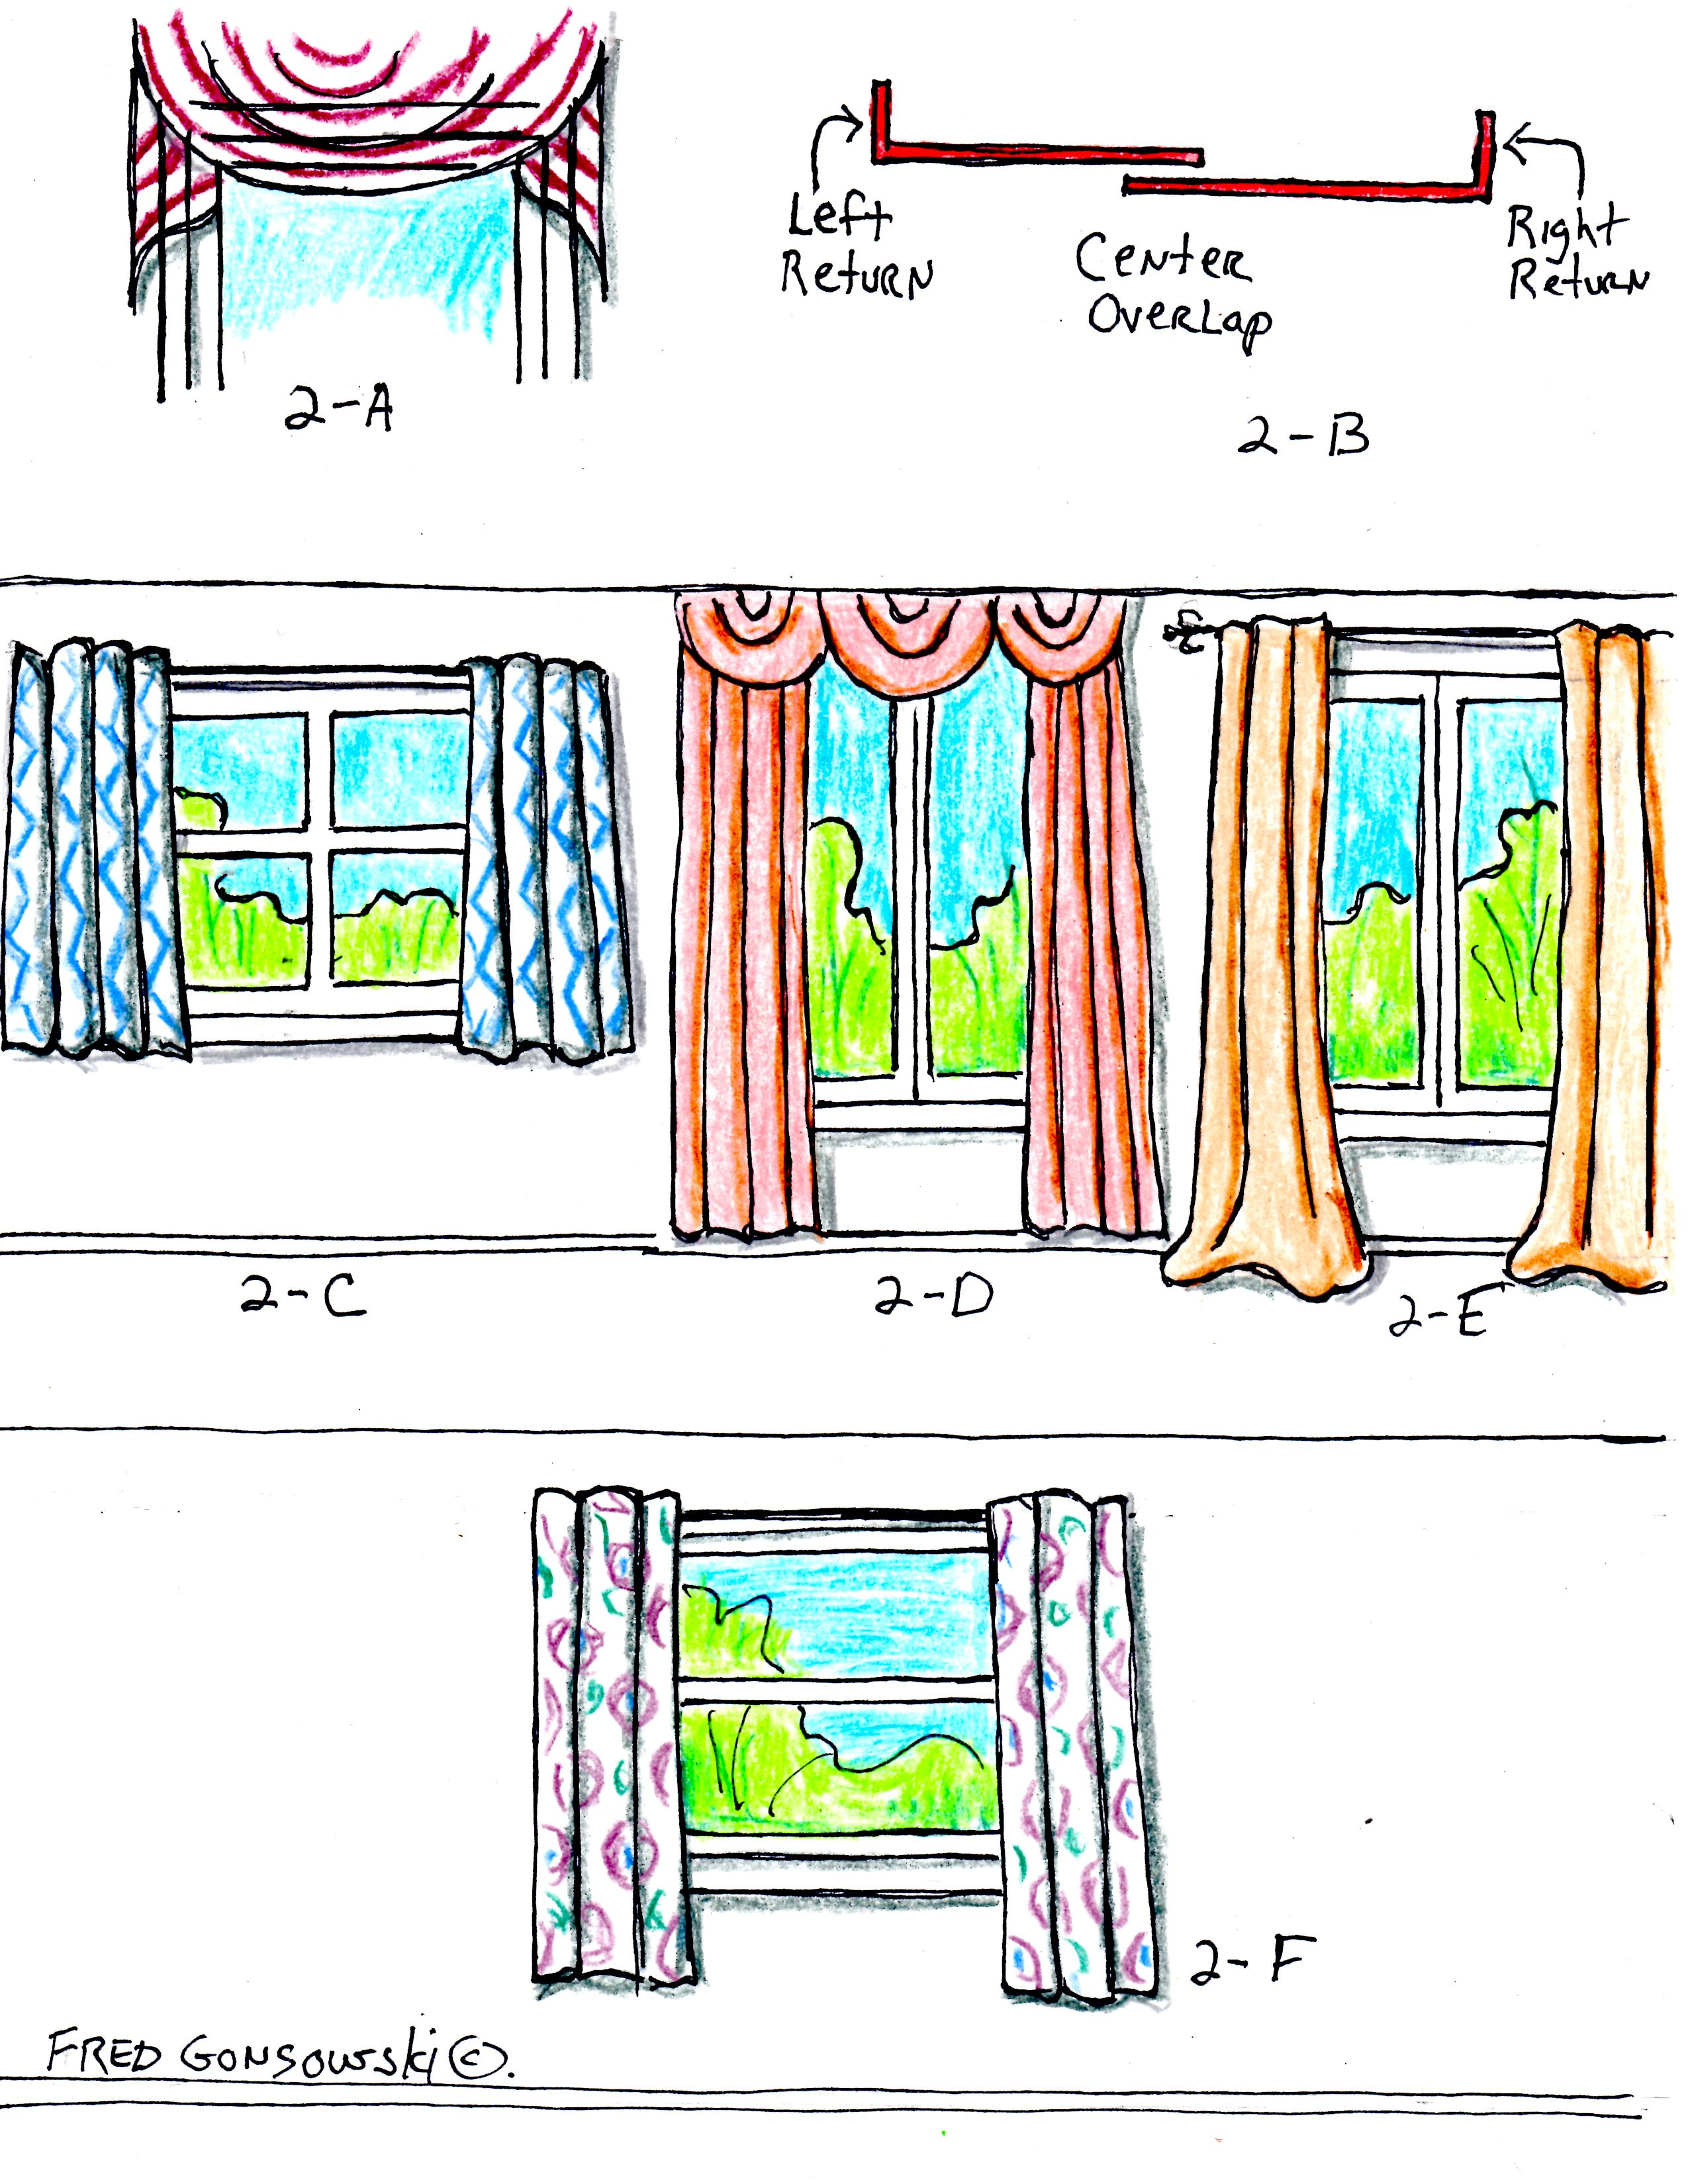 hanging curtains from knobs, not rods? - Home Decorating & Design